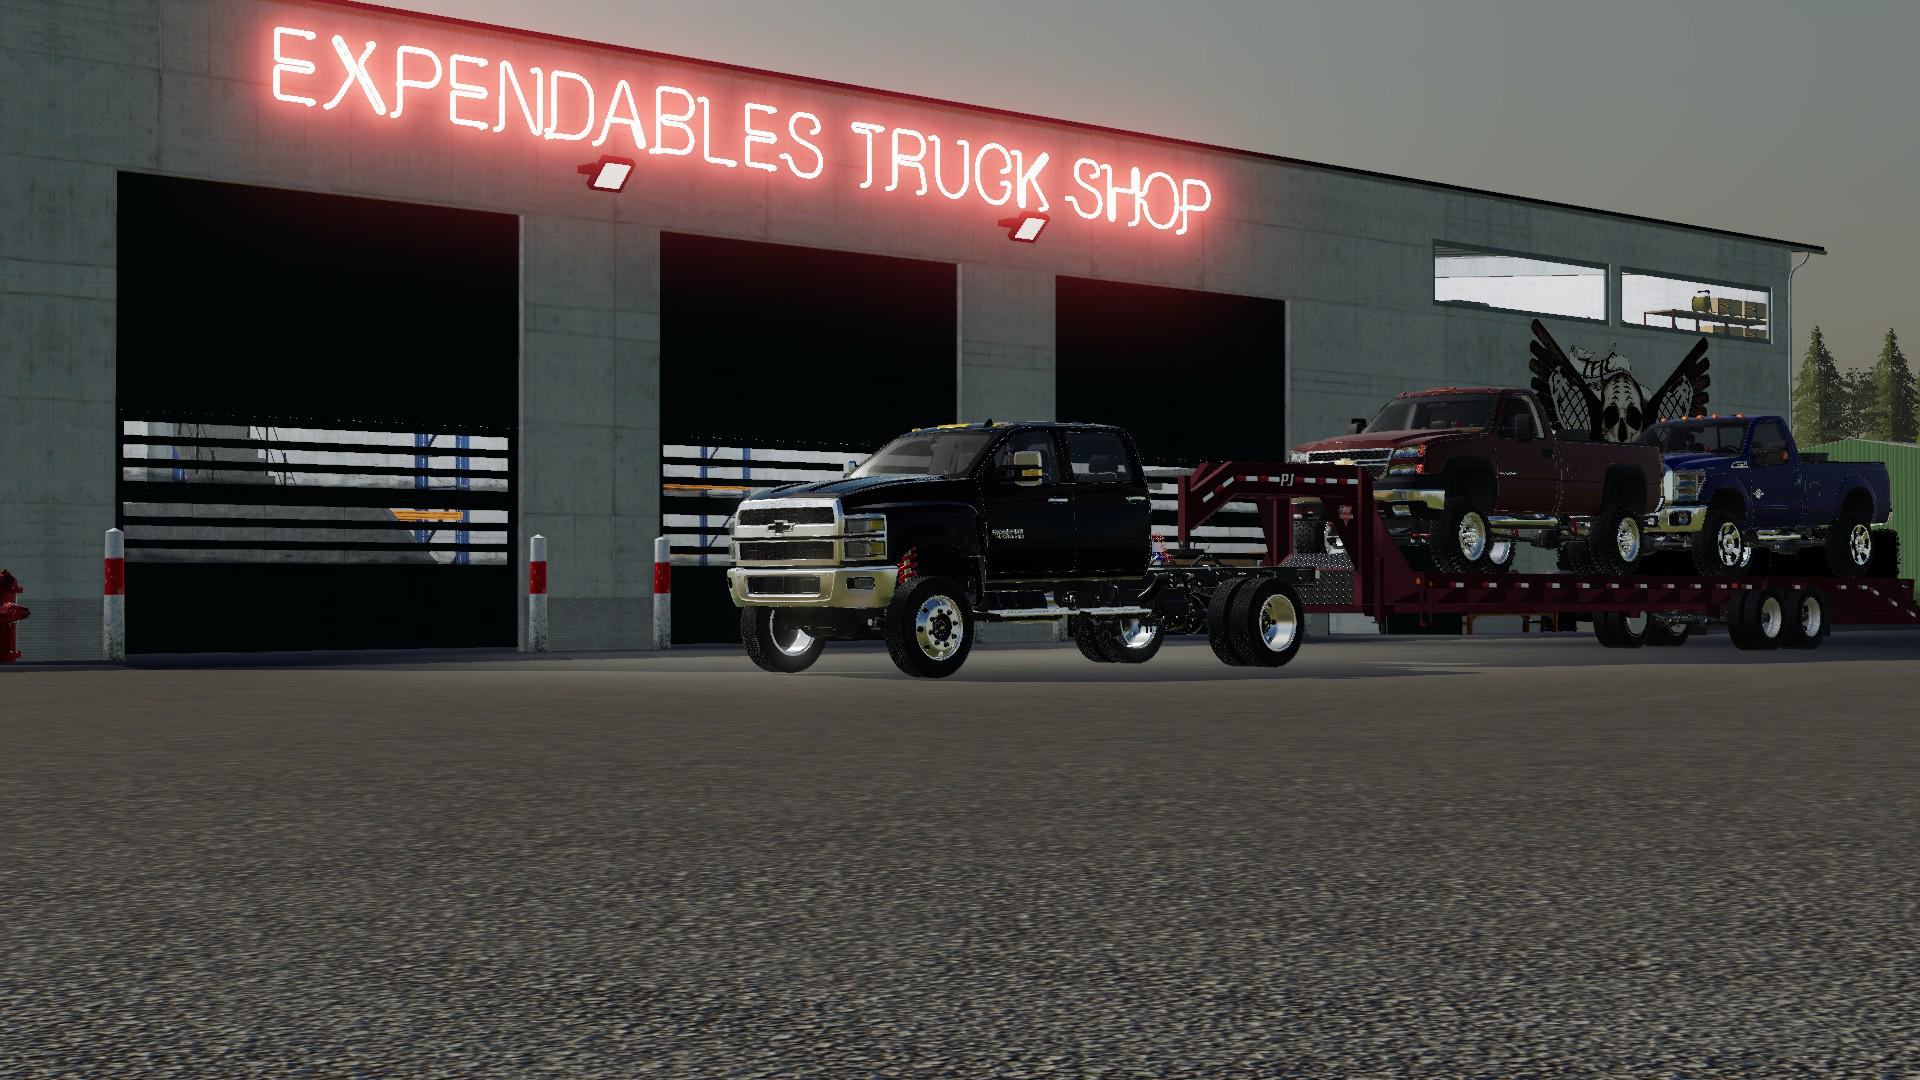 Expendables place-able workshop v 1.0